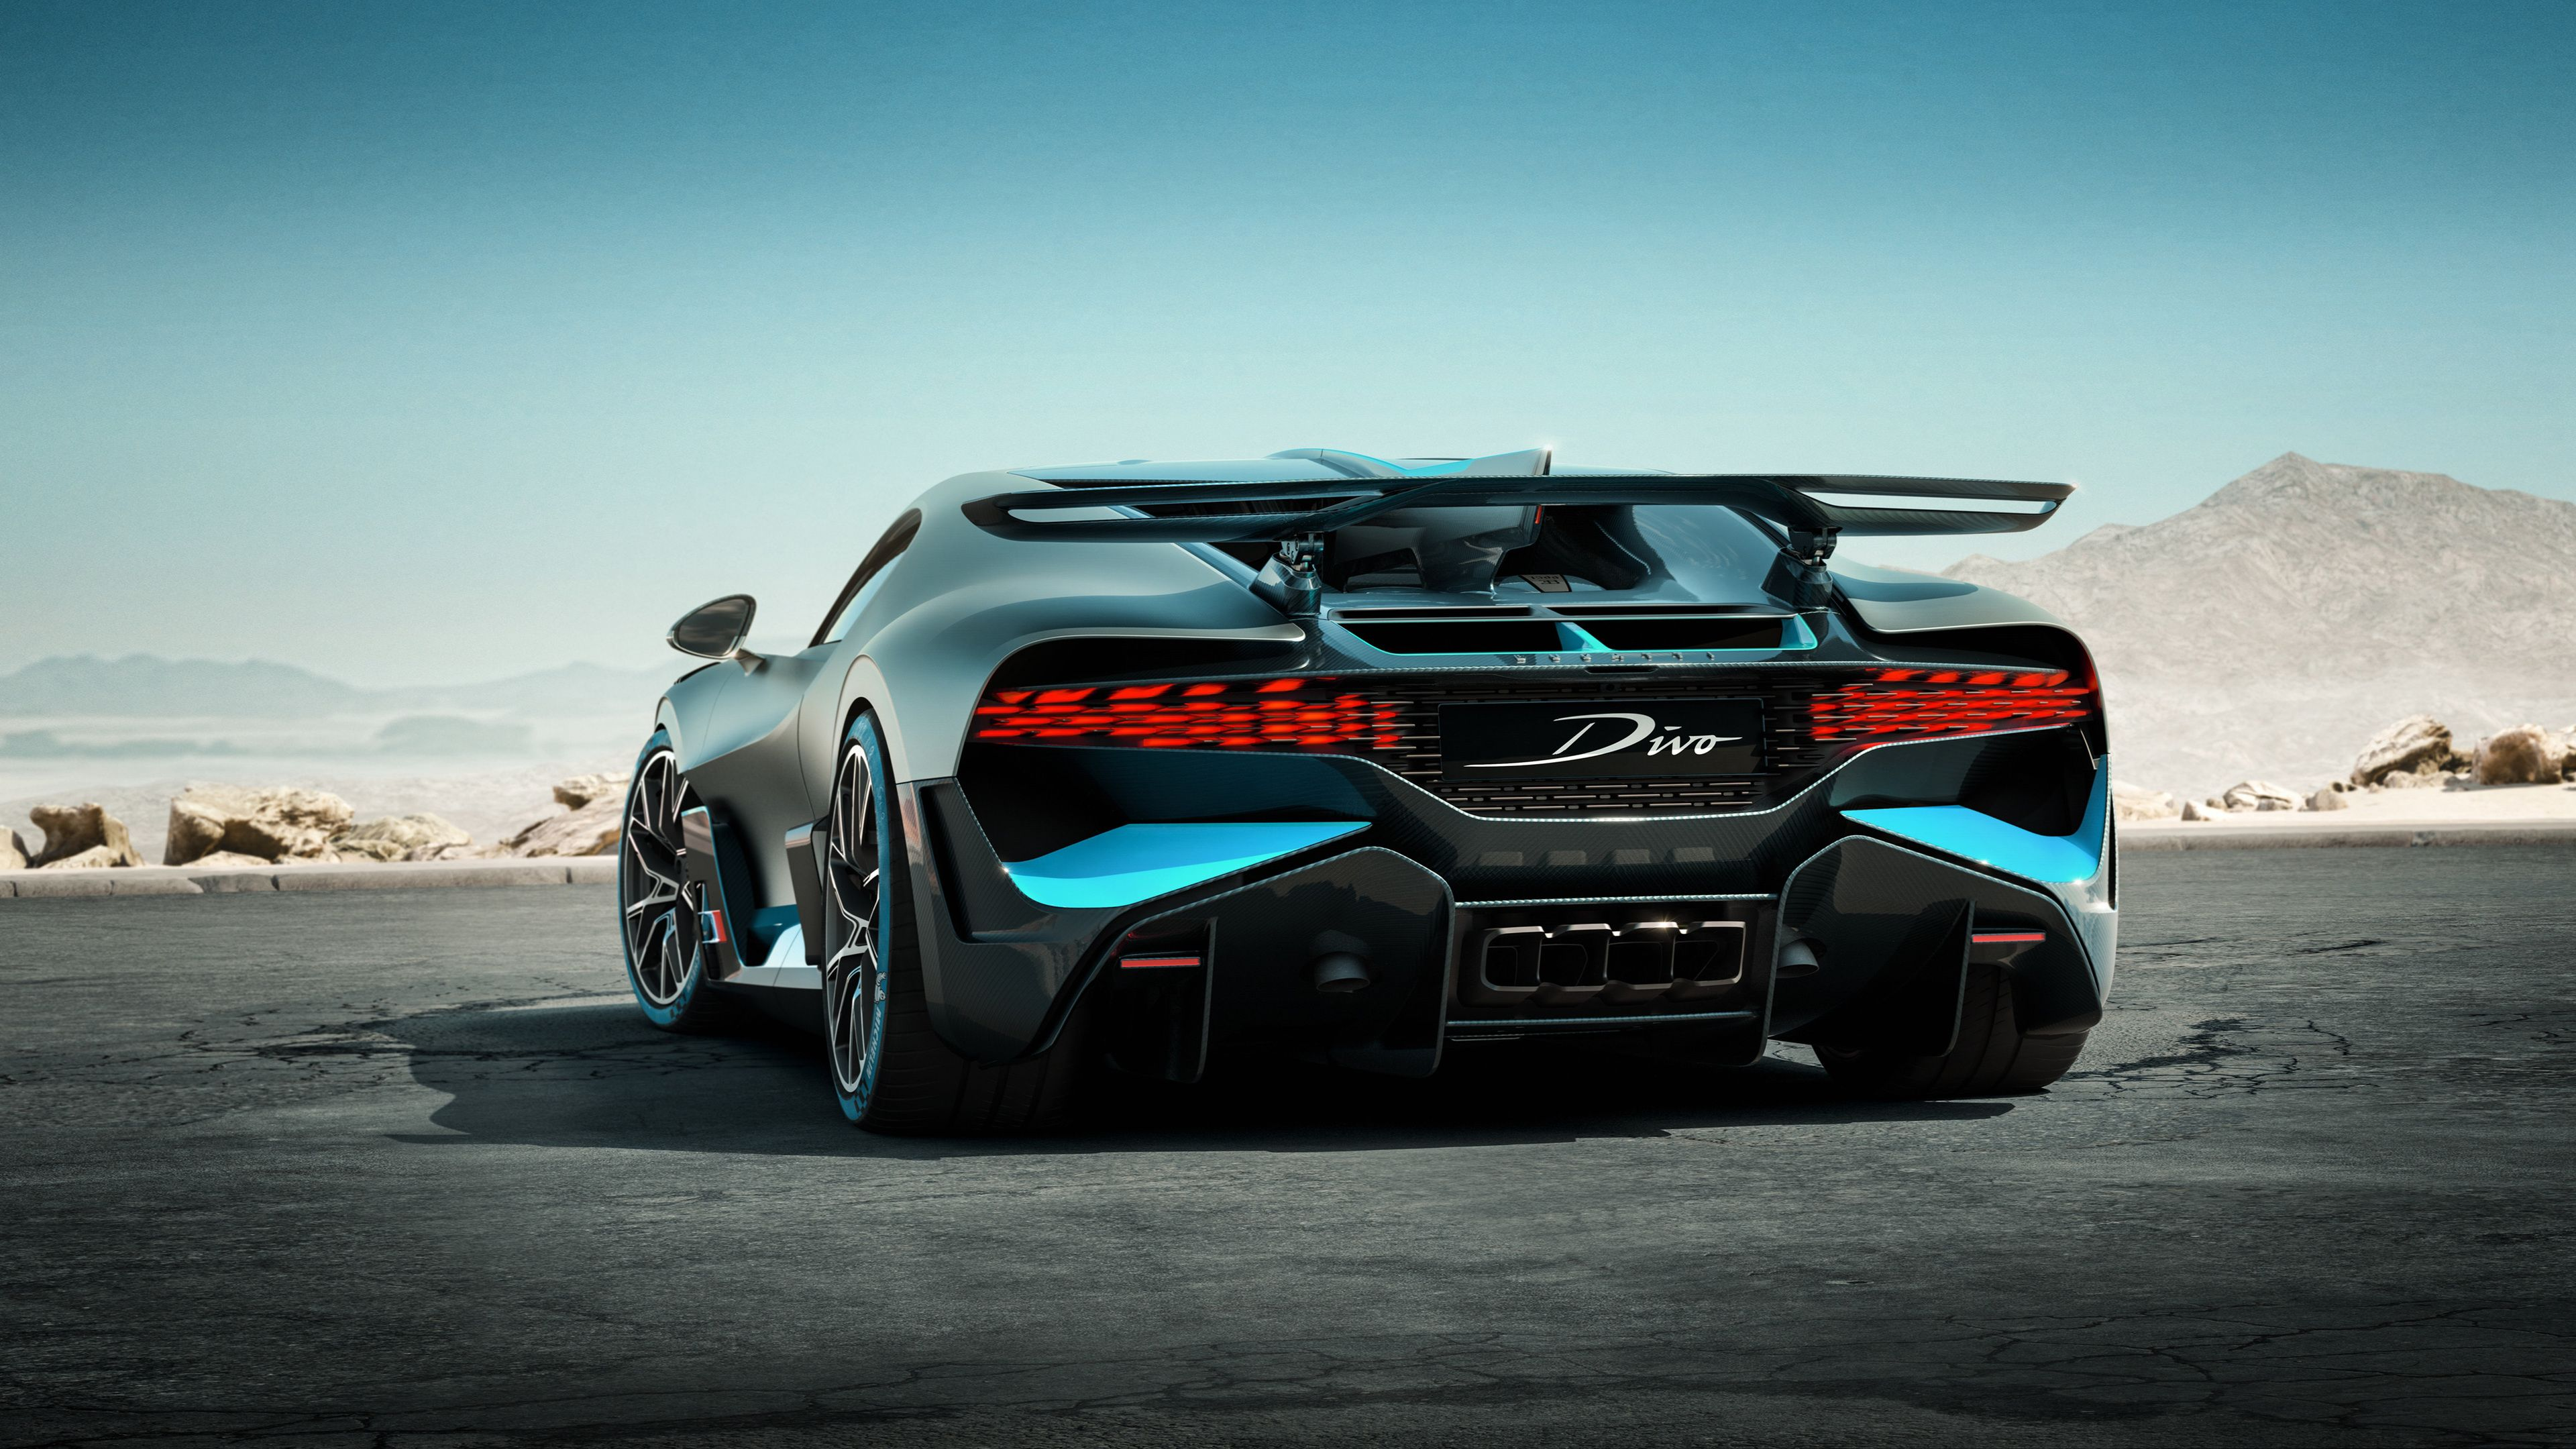 Wallpaper 4k 2018 Bugatti Divo Rear 2018 Cars Wallpapers 4k